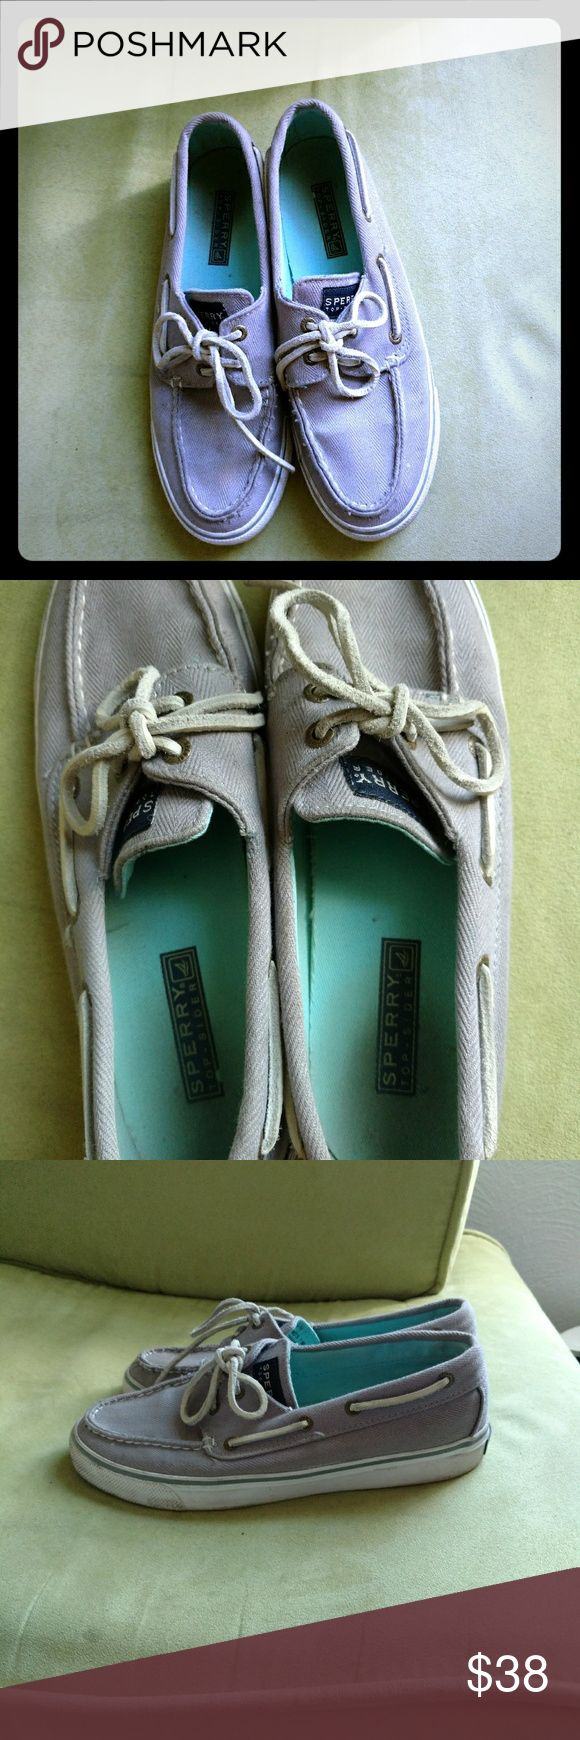 Sperry Top-Sider womens shoes, size 7. NICE! Great comfy shoes in good condition. Gray with tan leather laces. Certainly some marks (look at pics), from normal use but could be cleaned with some baking soda and scrubbing. ;) So much use left in these! Sperry Top-Sider Shoes